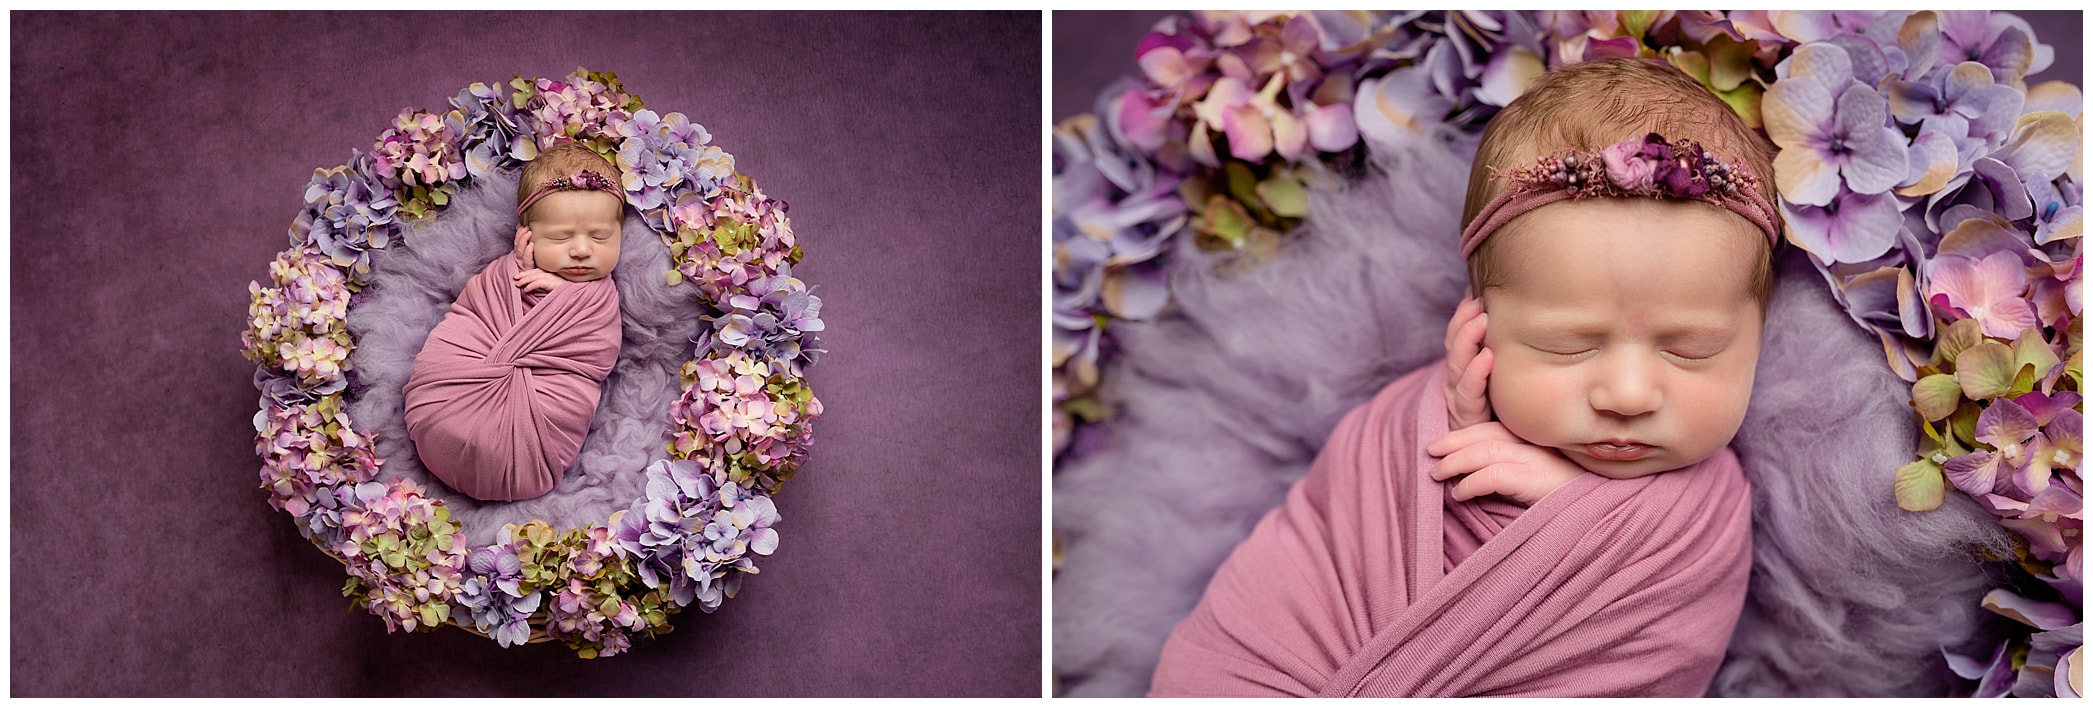 Baby in floral basket mauve and pink by newborn photographer Lynne Harper